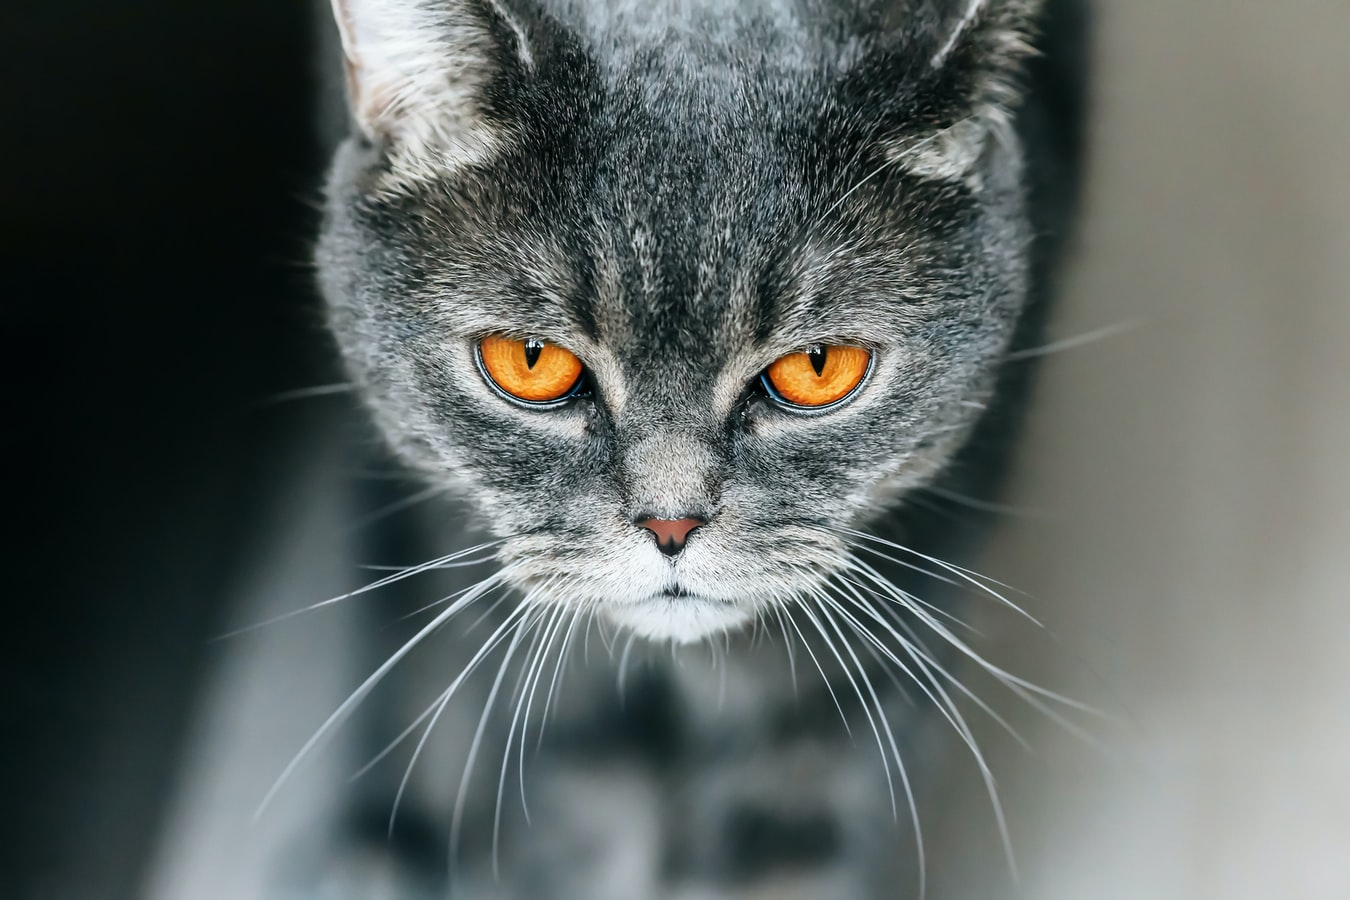 Picture of a mischievous cat Photo by Tengyart on Unsplash